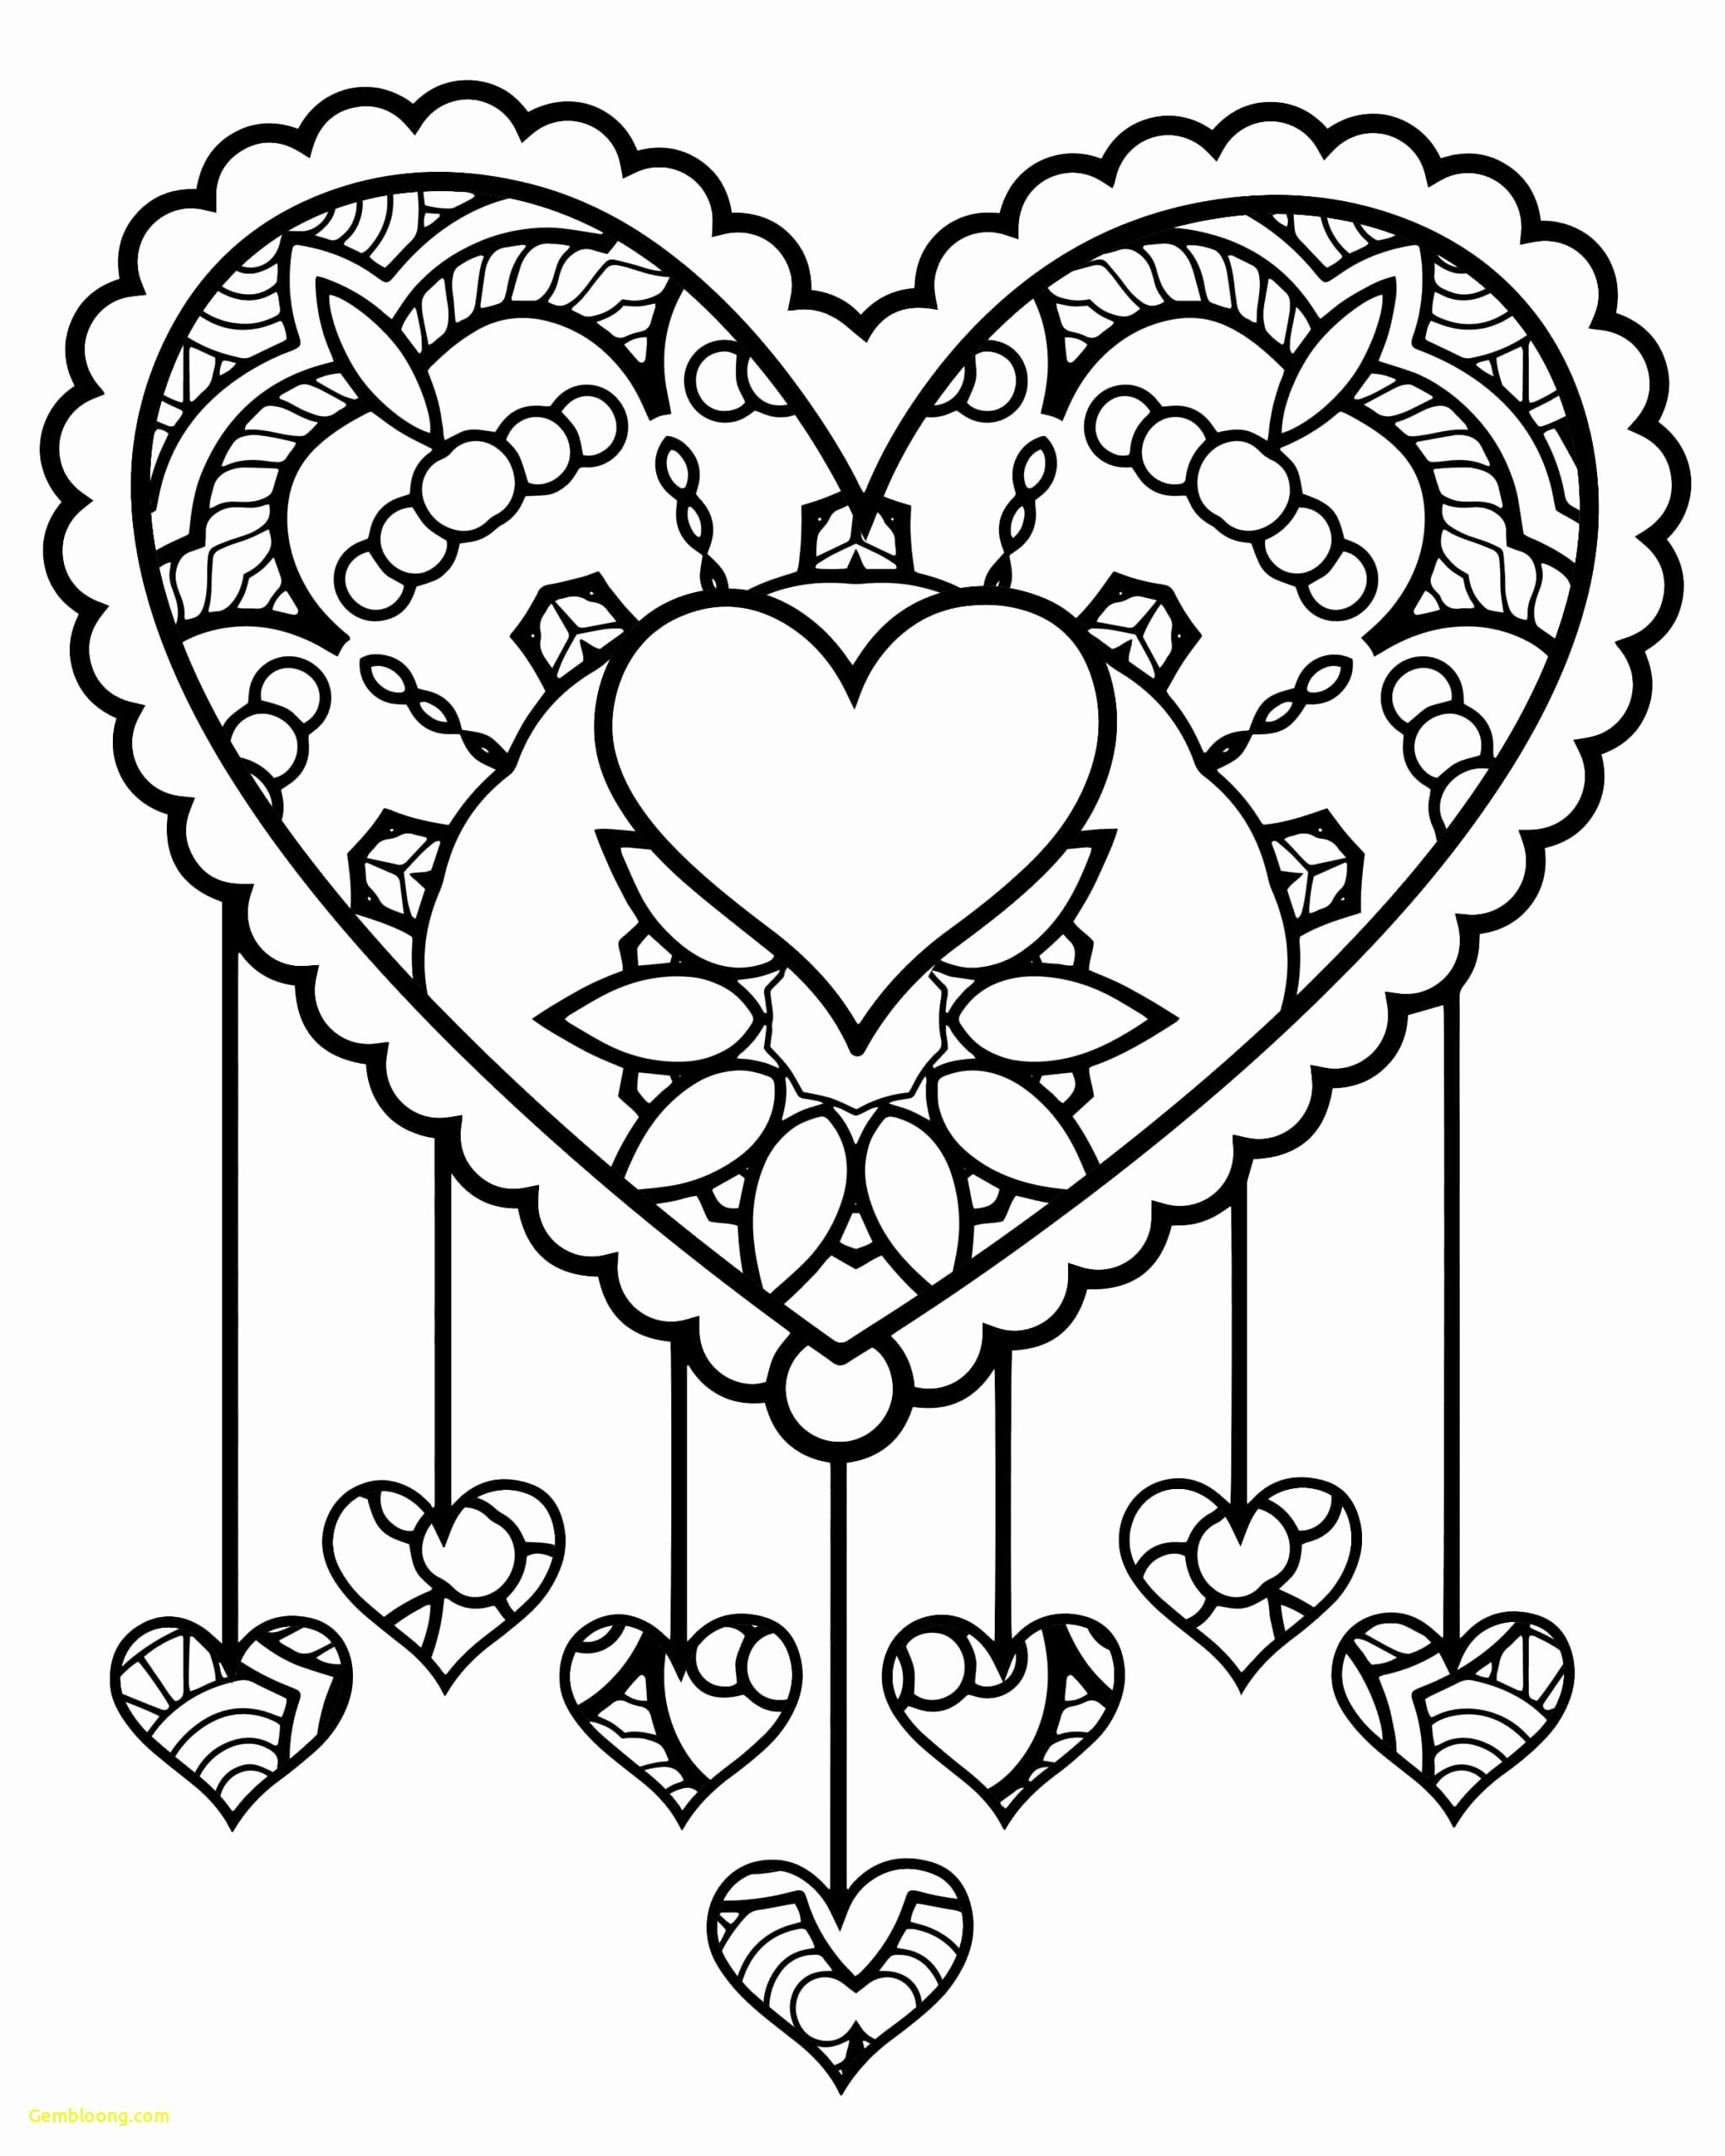 Heart Coloring Pages Elegant Coloring Pages Heart Shape Coloring Pages Beautiful Heart Skull Coloring Pages Love Coloring Pages Coloring Pages For Girls